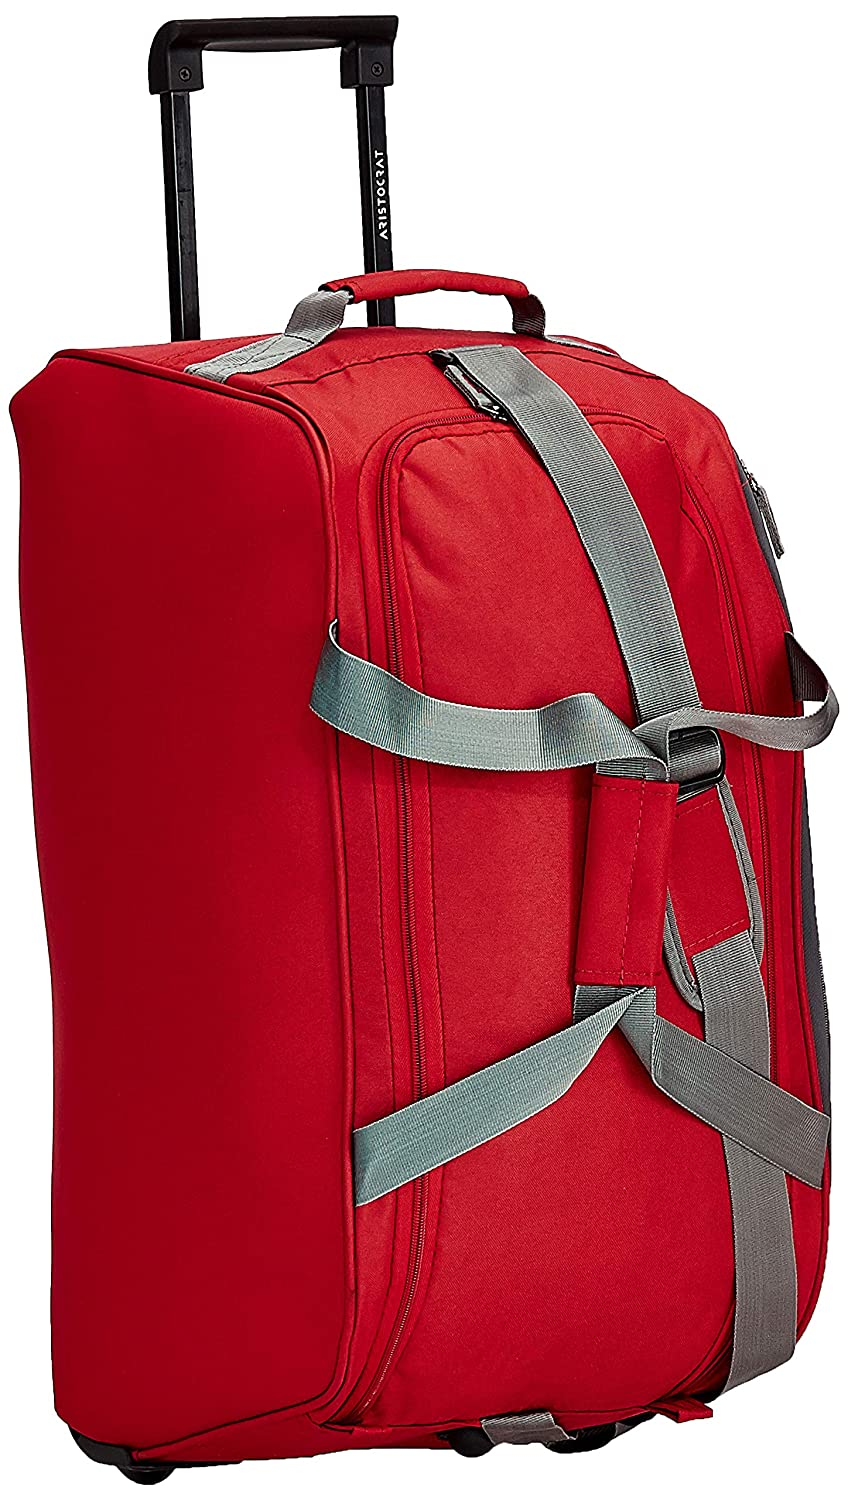 Aristocrat Volt Nxt Polyester 53.5 cms Red Travel Duffle